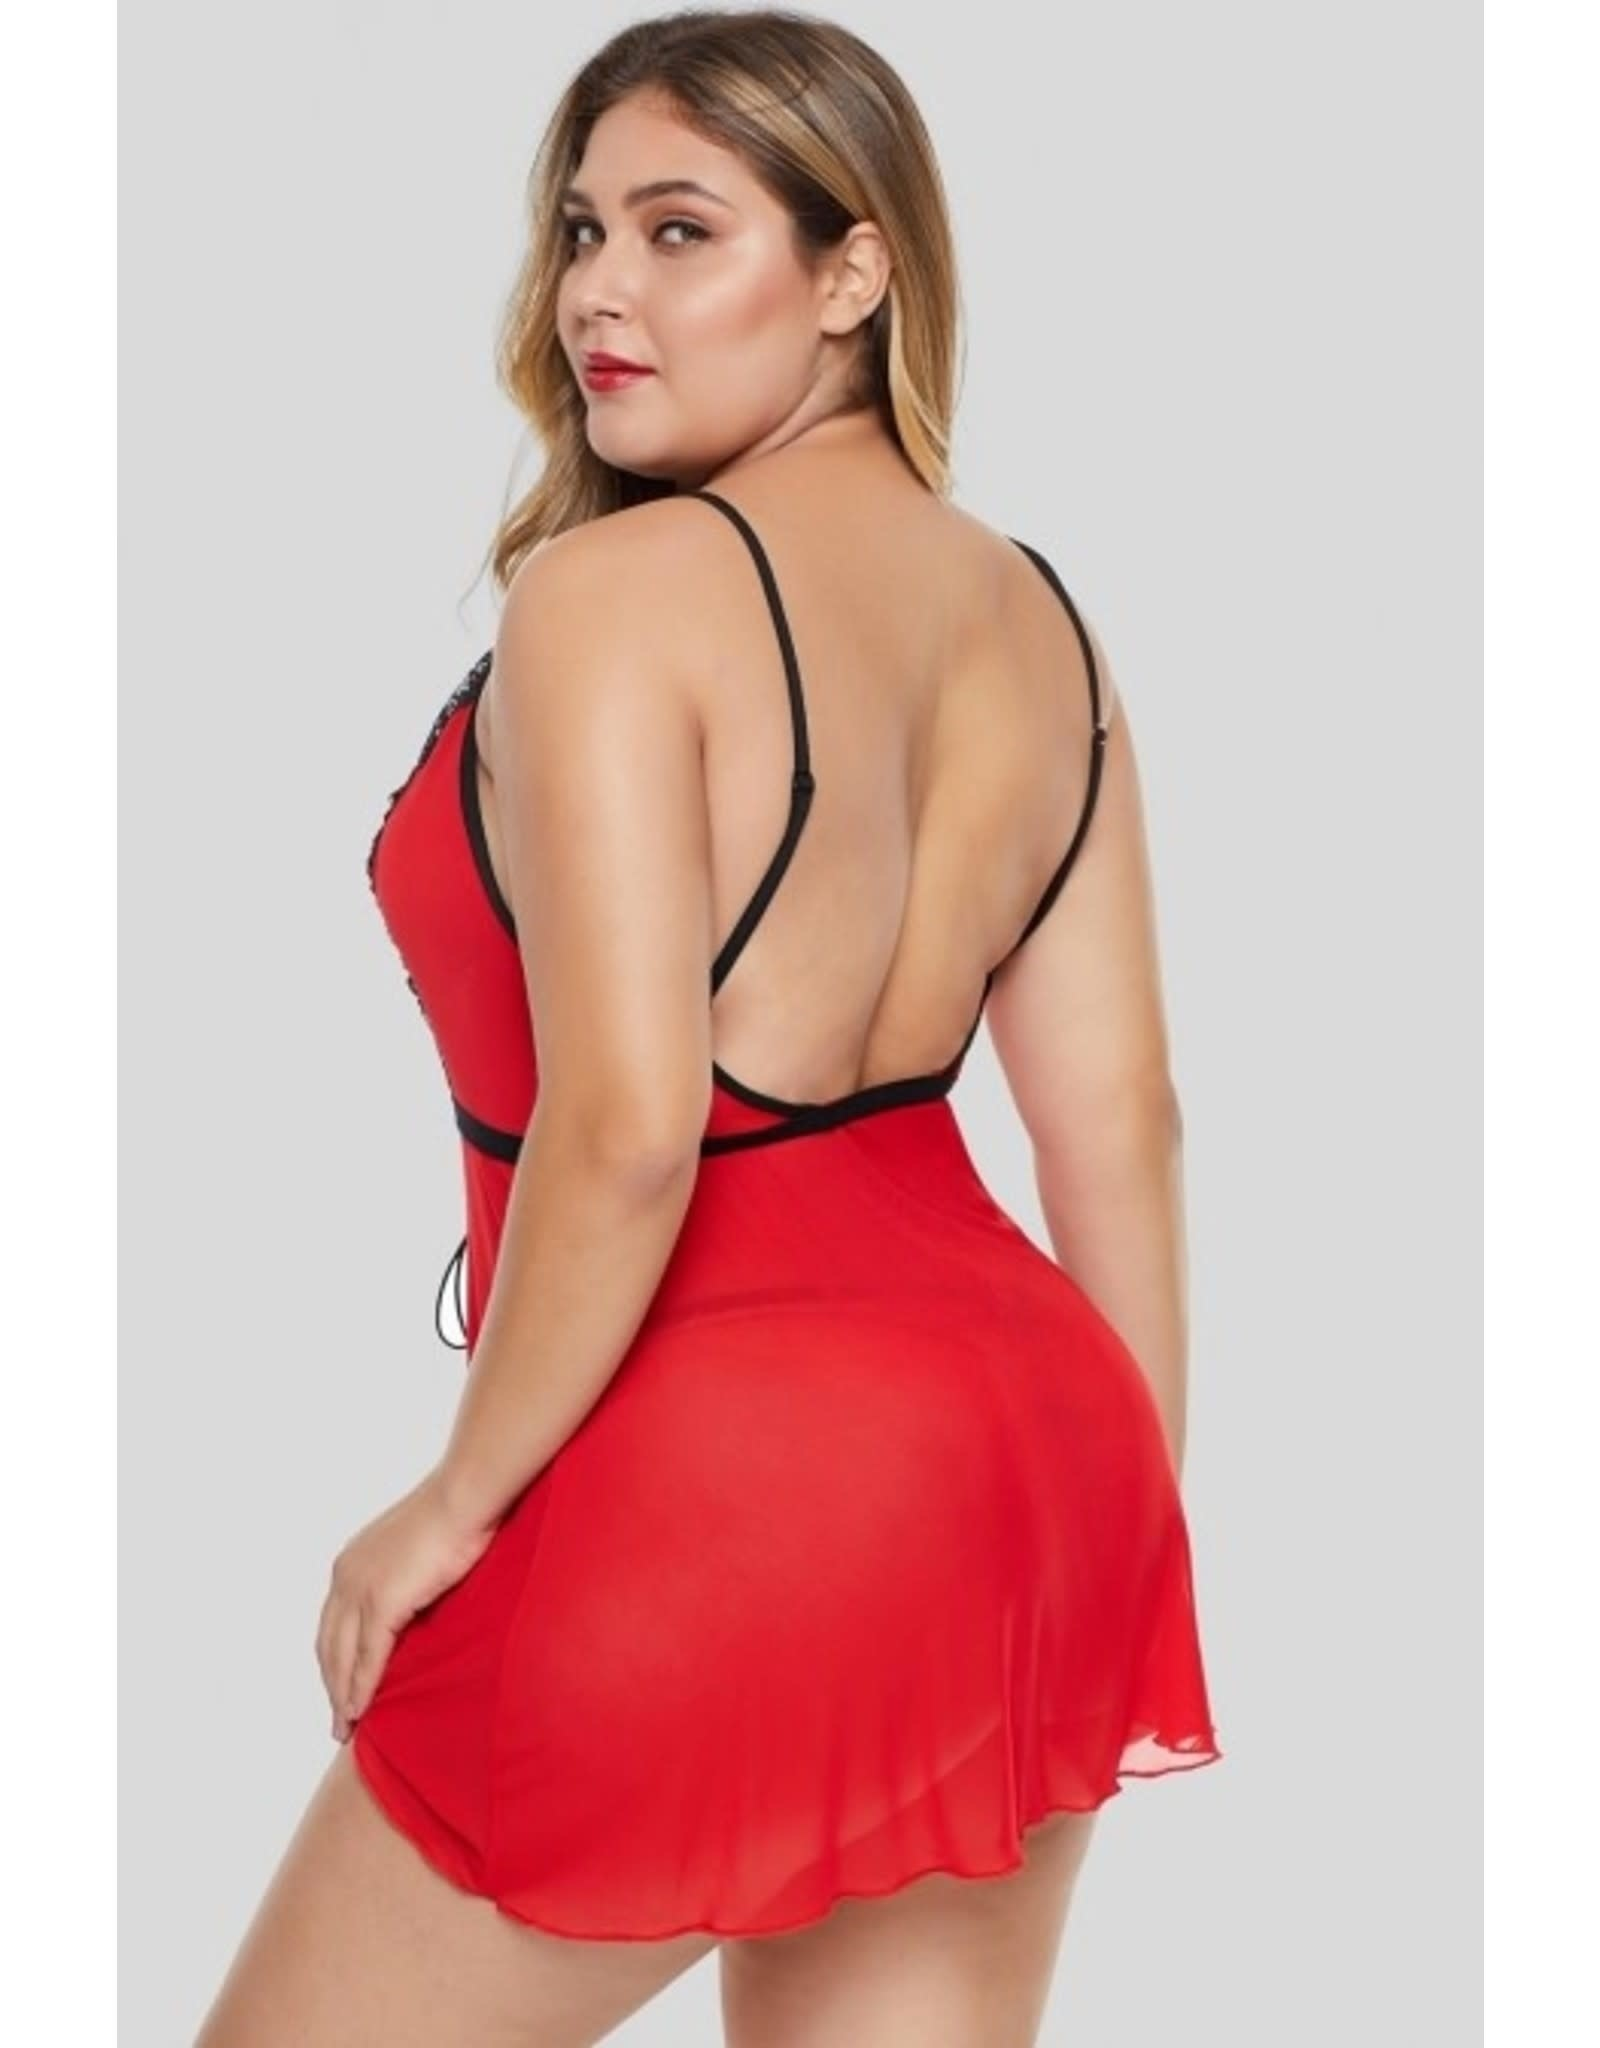 RED LACE-UP PLUS SIZE BABYDOLL - 3X